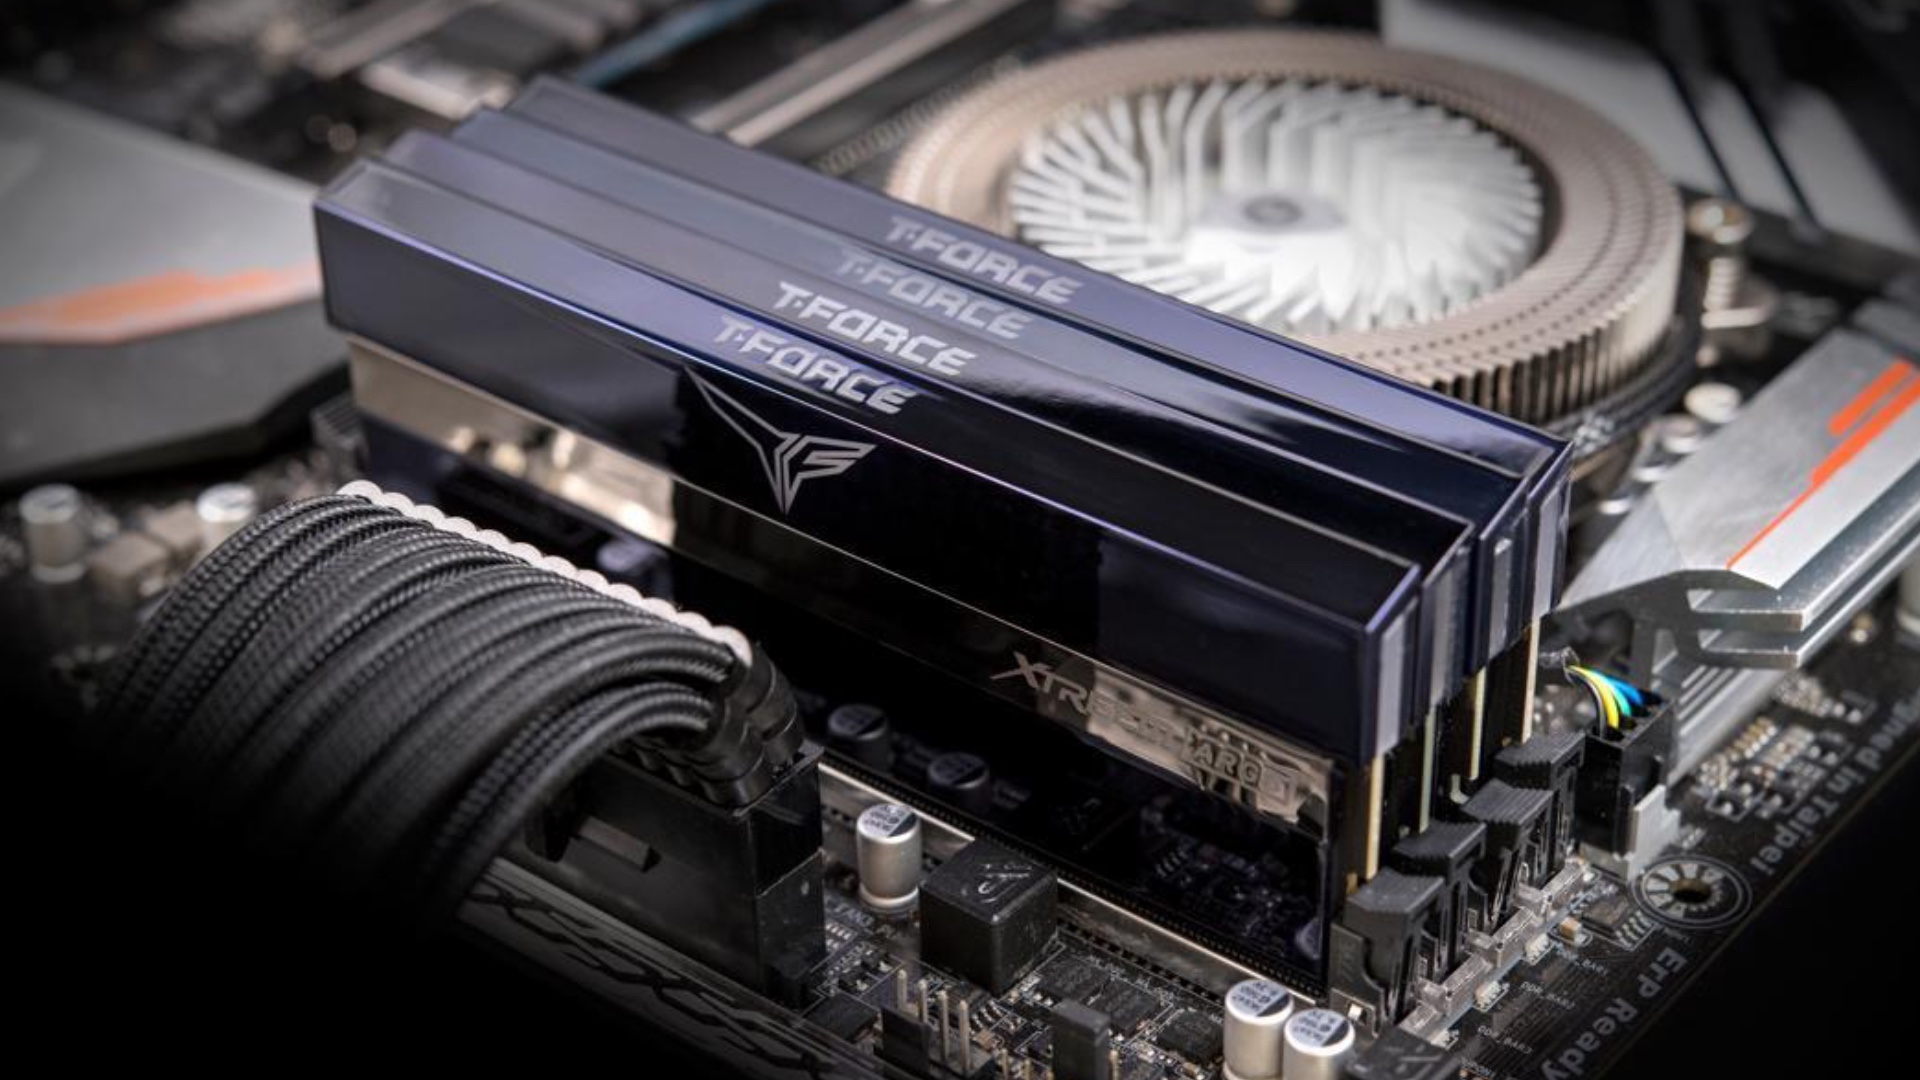 Never mind DDR5, Teamgroup's new DDR4 RAM kit has a mammoth 256GB capacity